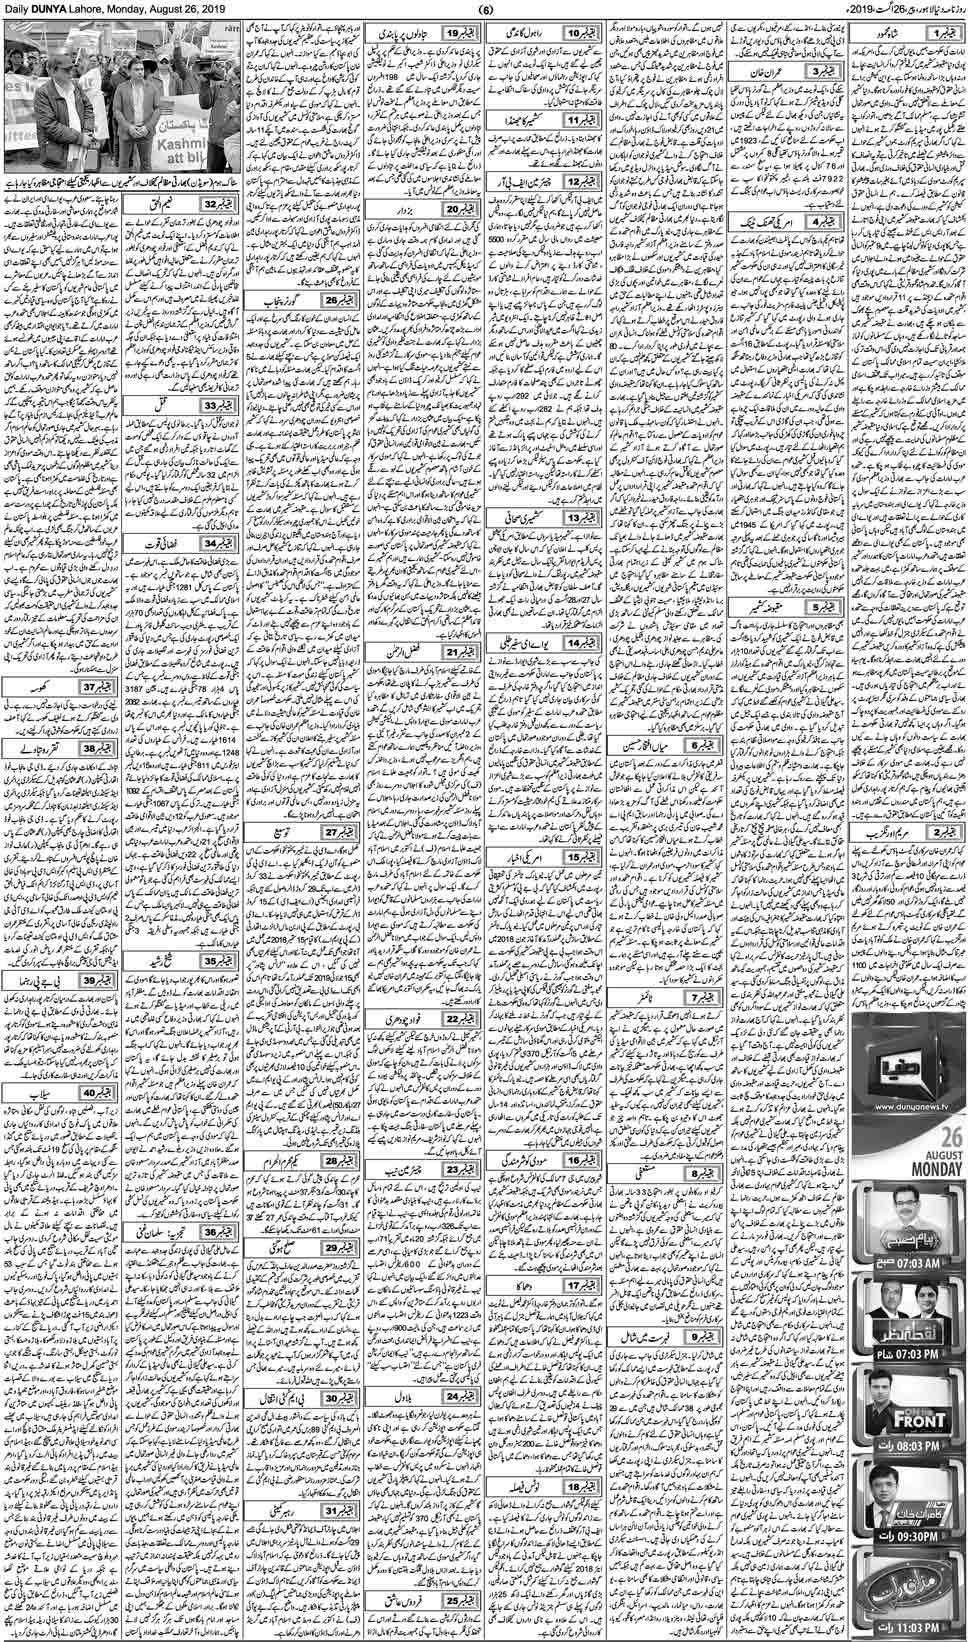 Daily Express Urdu Newspaper Today | Daily Express Epaper